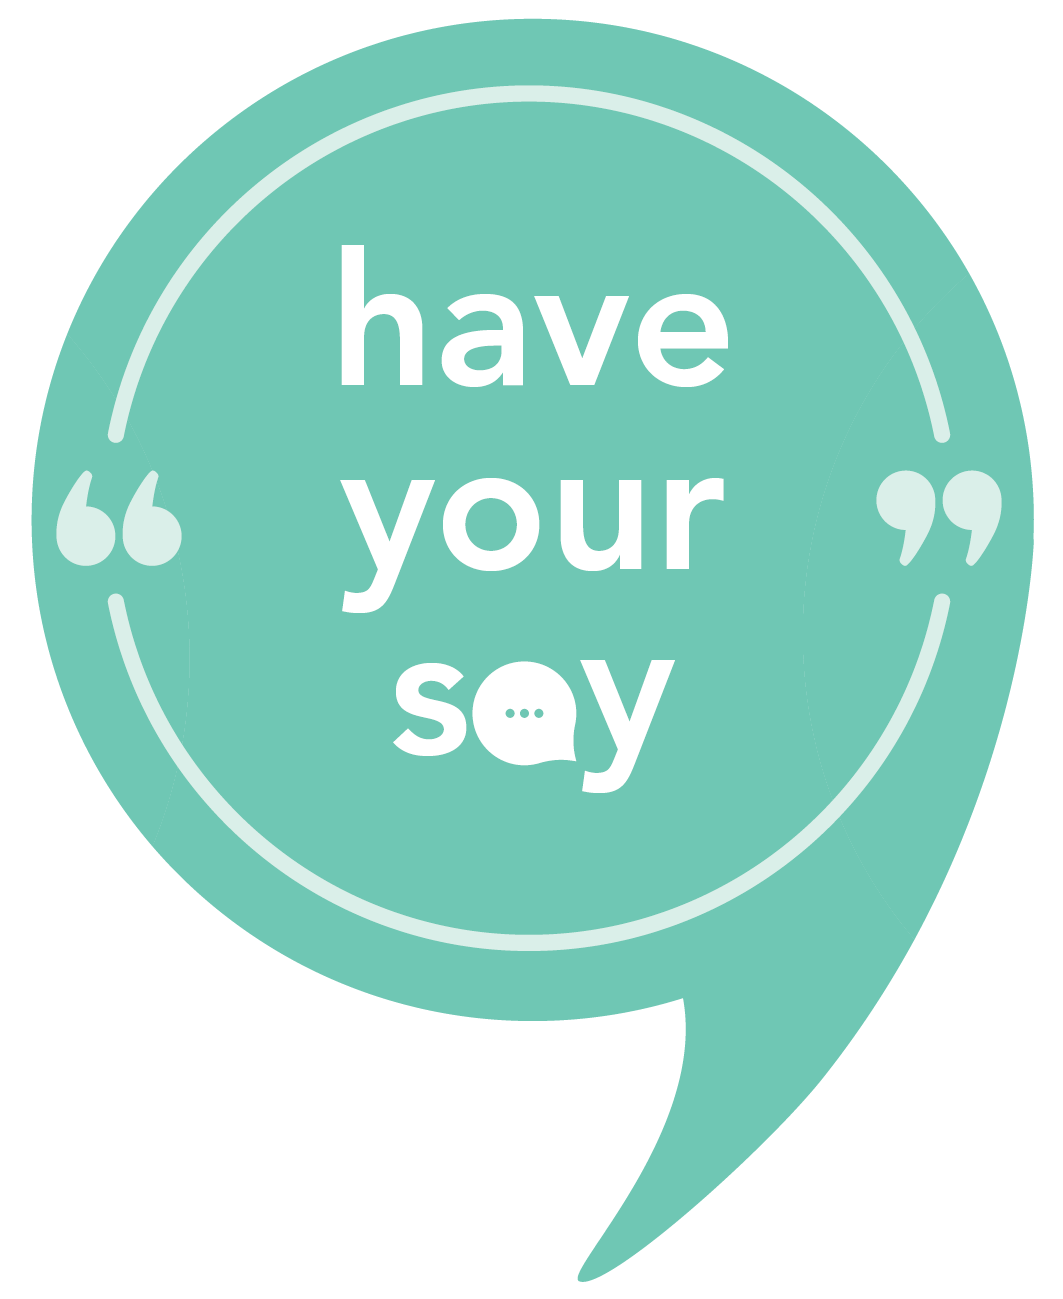 Have your say logo   tint green